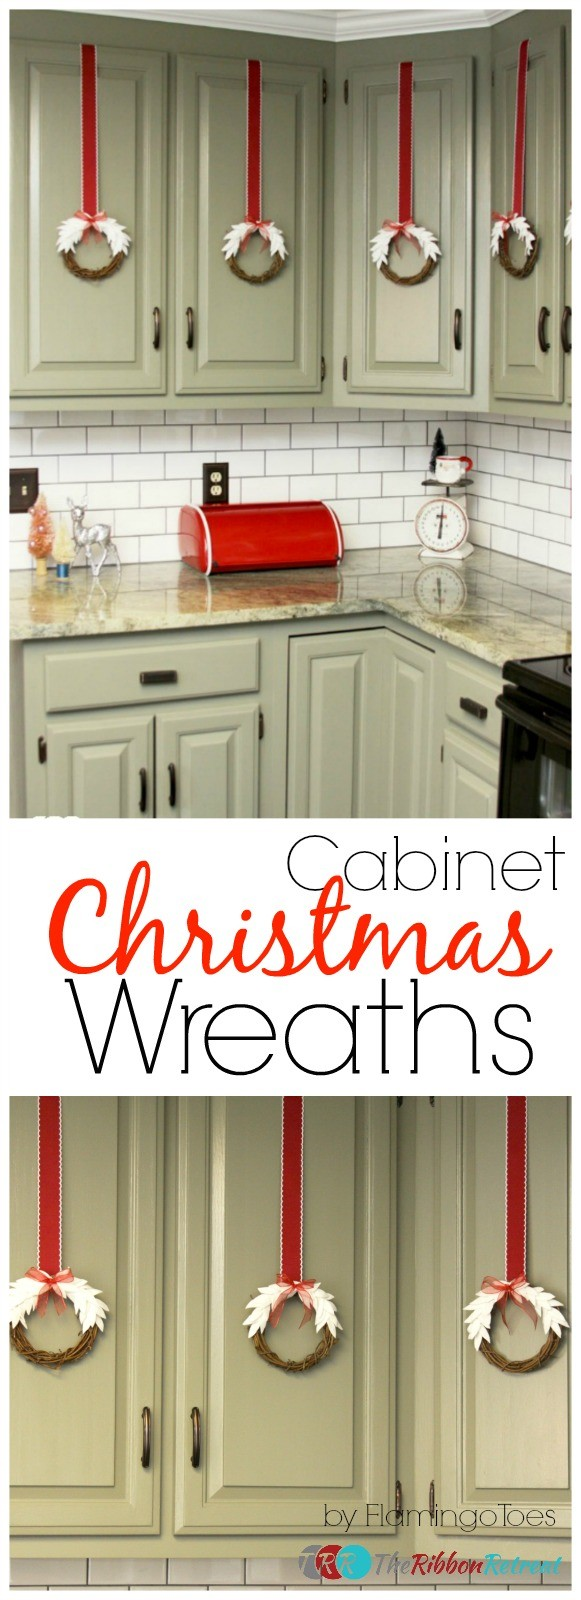 Cabinet Christmas Wreaths - The Ribbon Retreat Blog